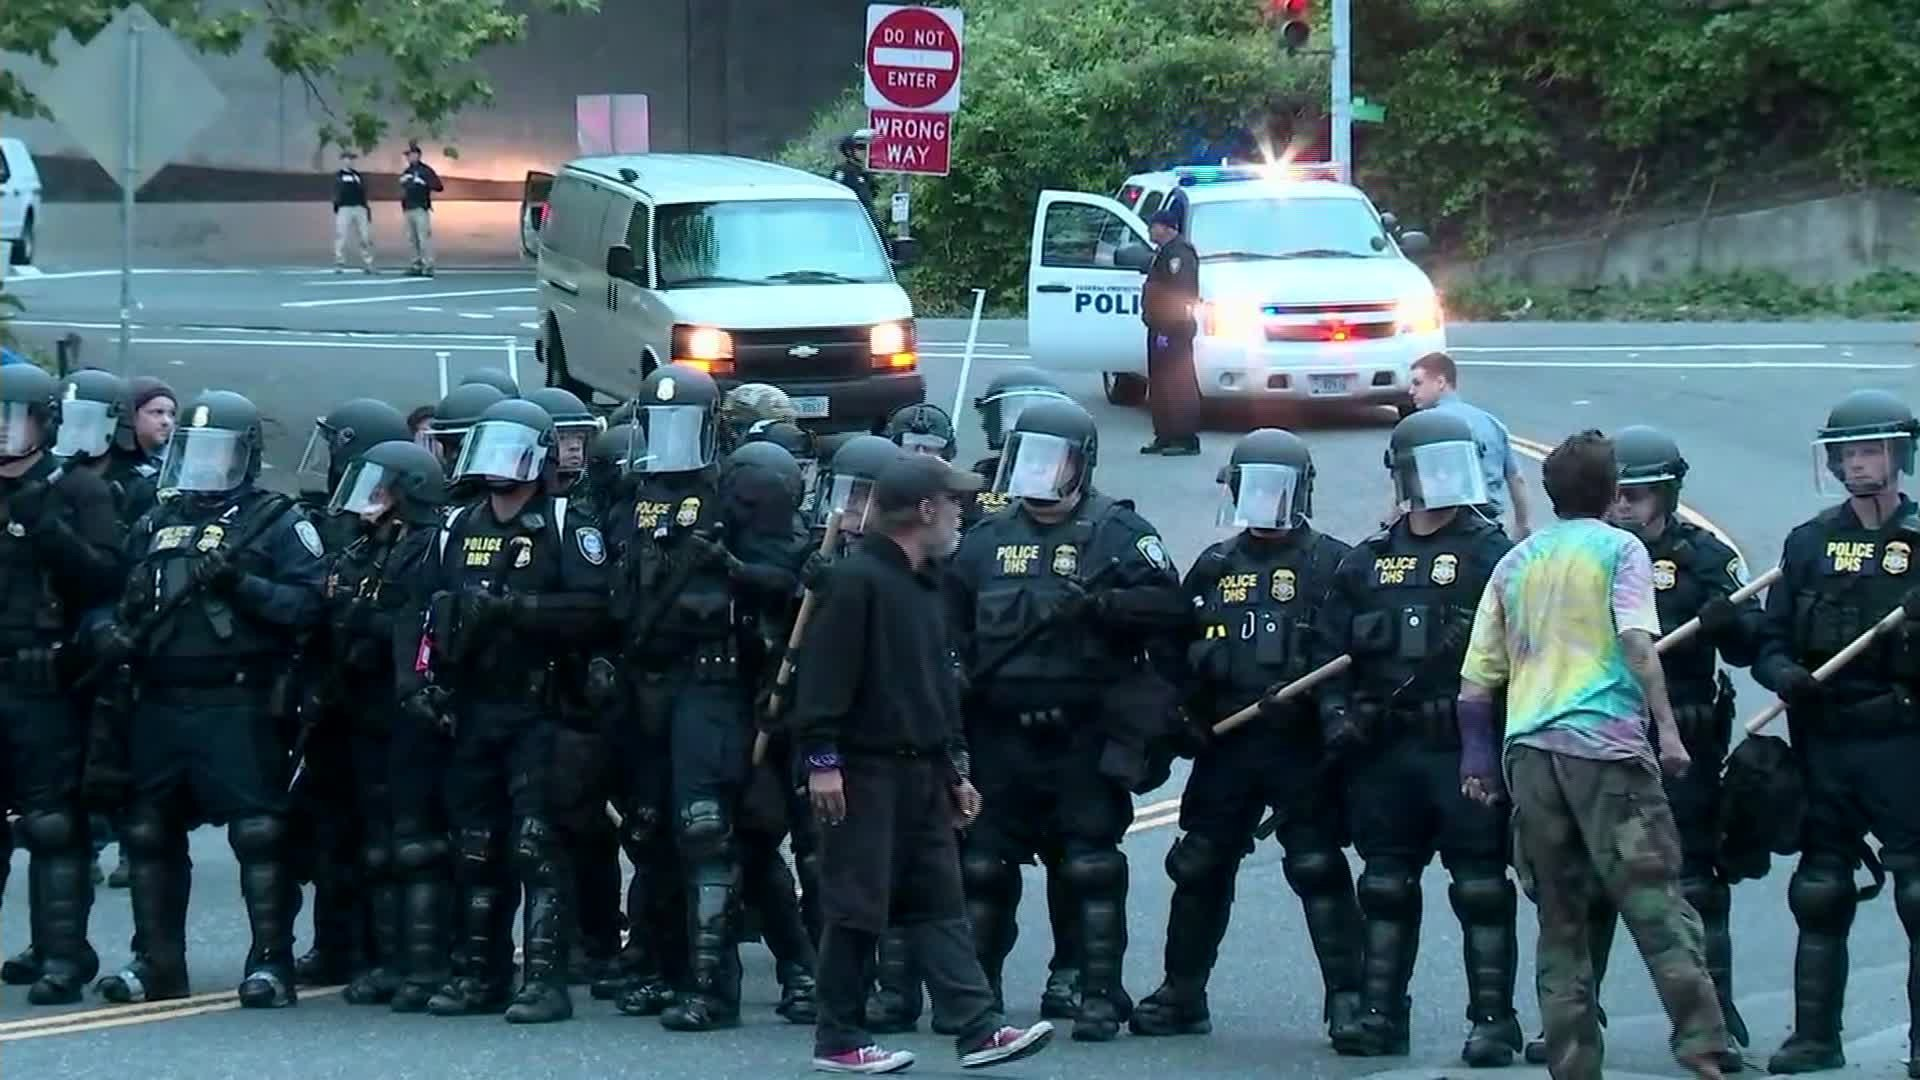 Protesters stand on June 28, 2018, near officers in riot gear as they block an entrance to the Portland ICE facility. (Credit: KPTV/CNN)